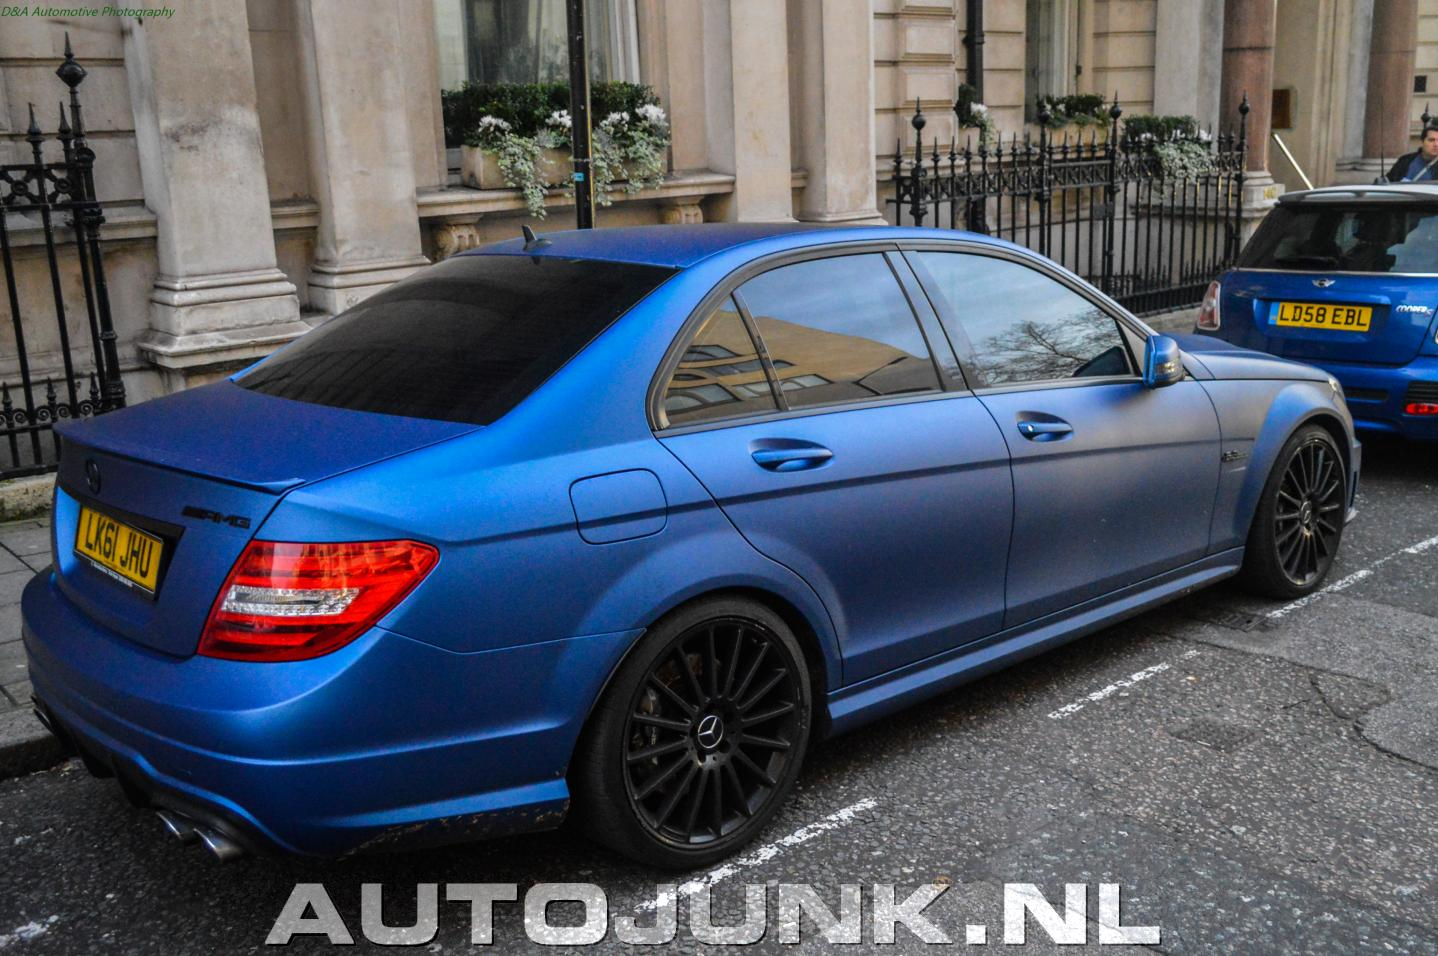 My 2015 mercedes c63 amg autos post for Mercedes benz c63 amg 507 edition 2015